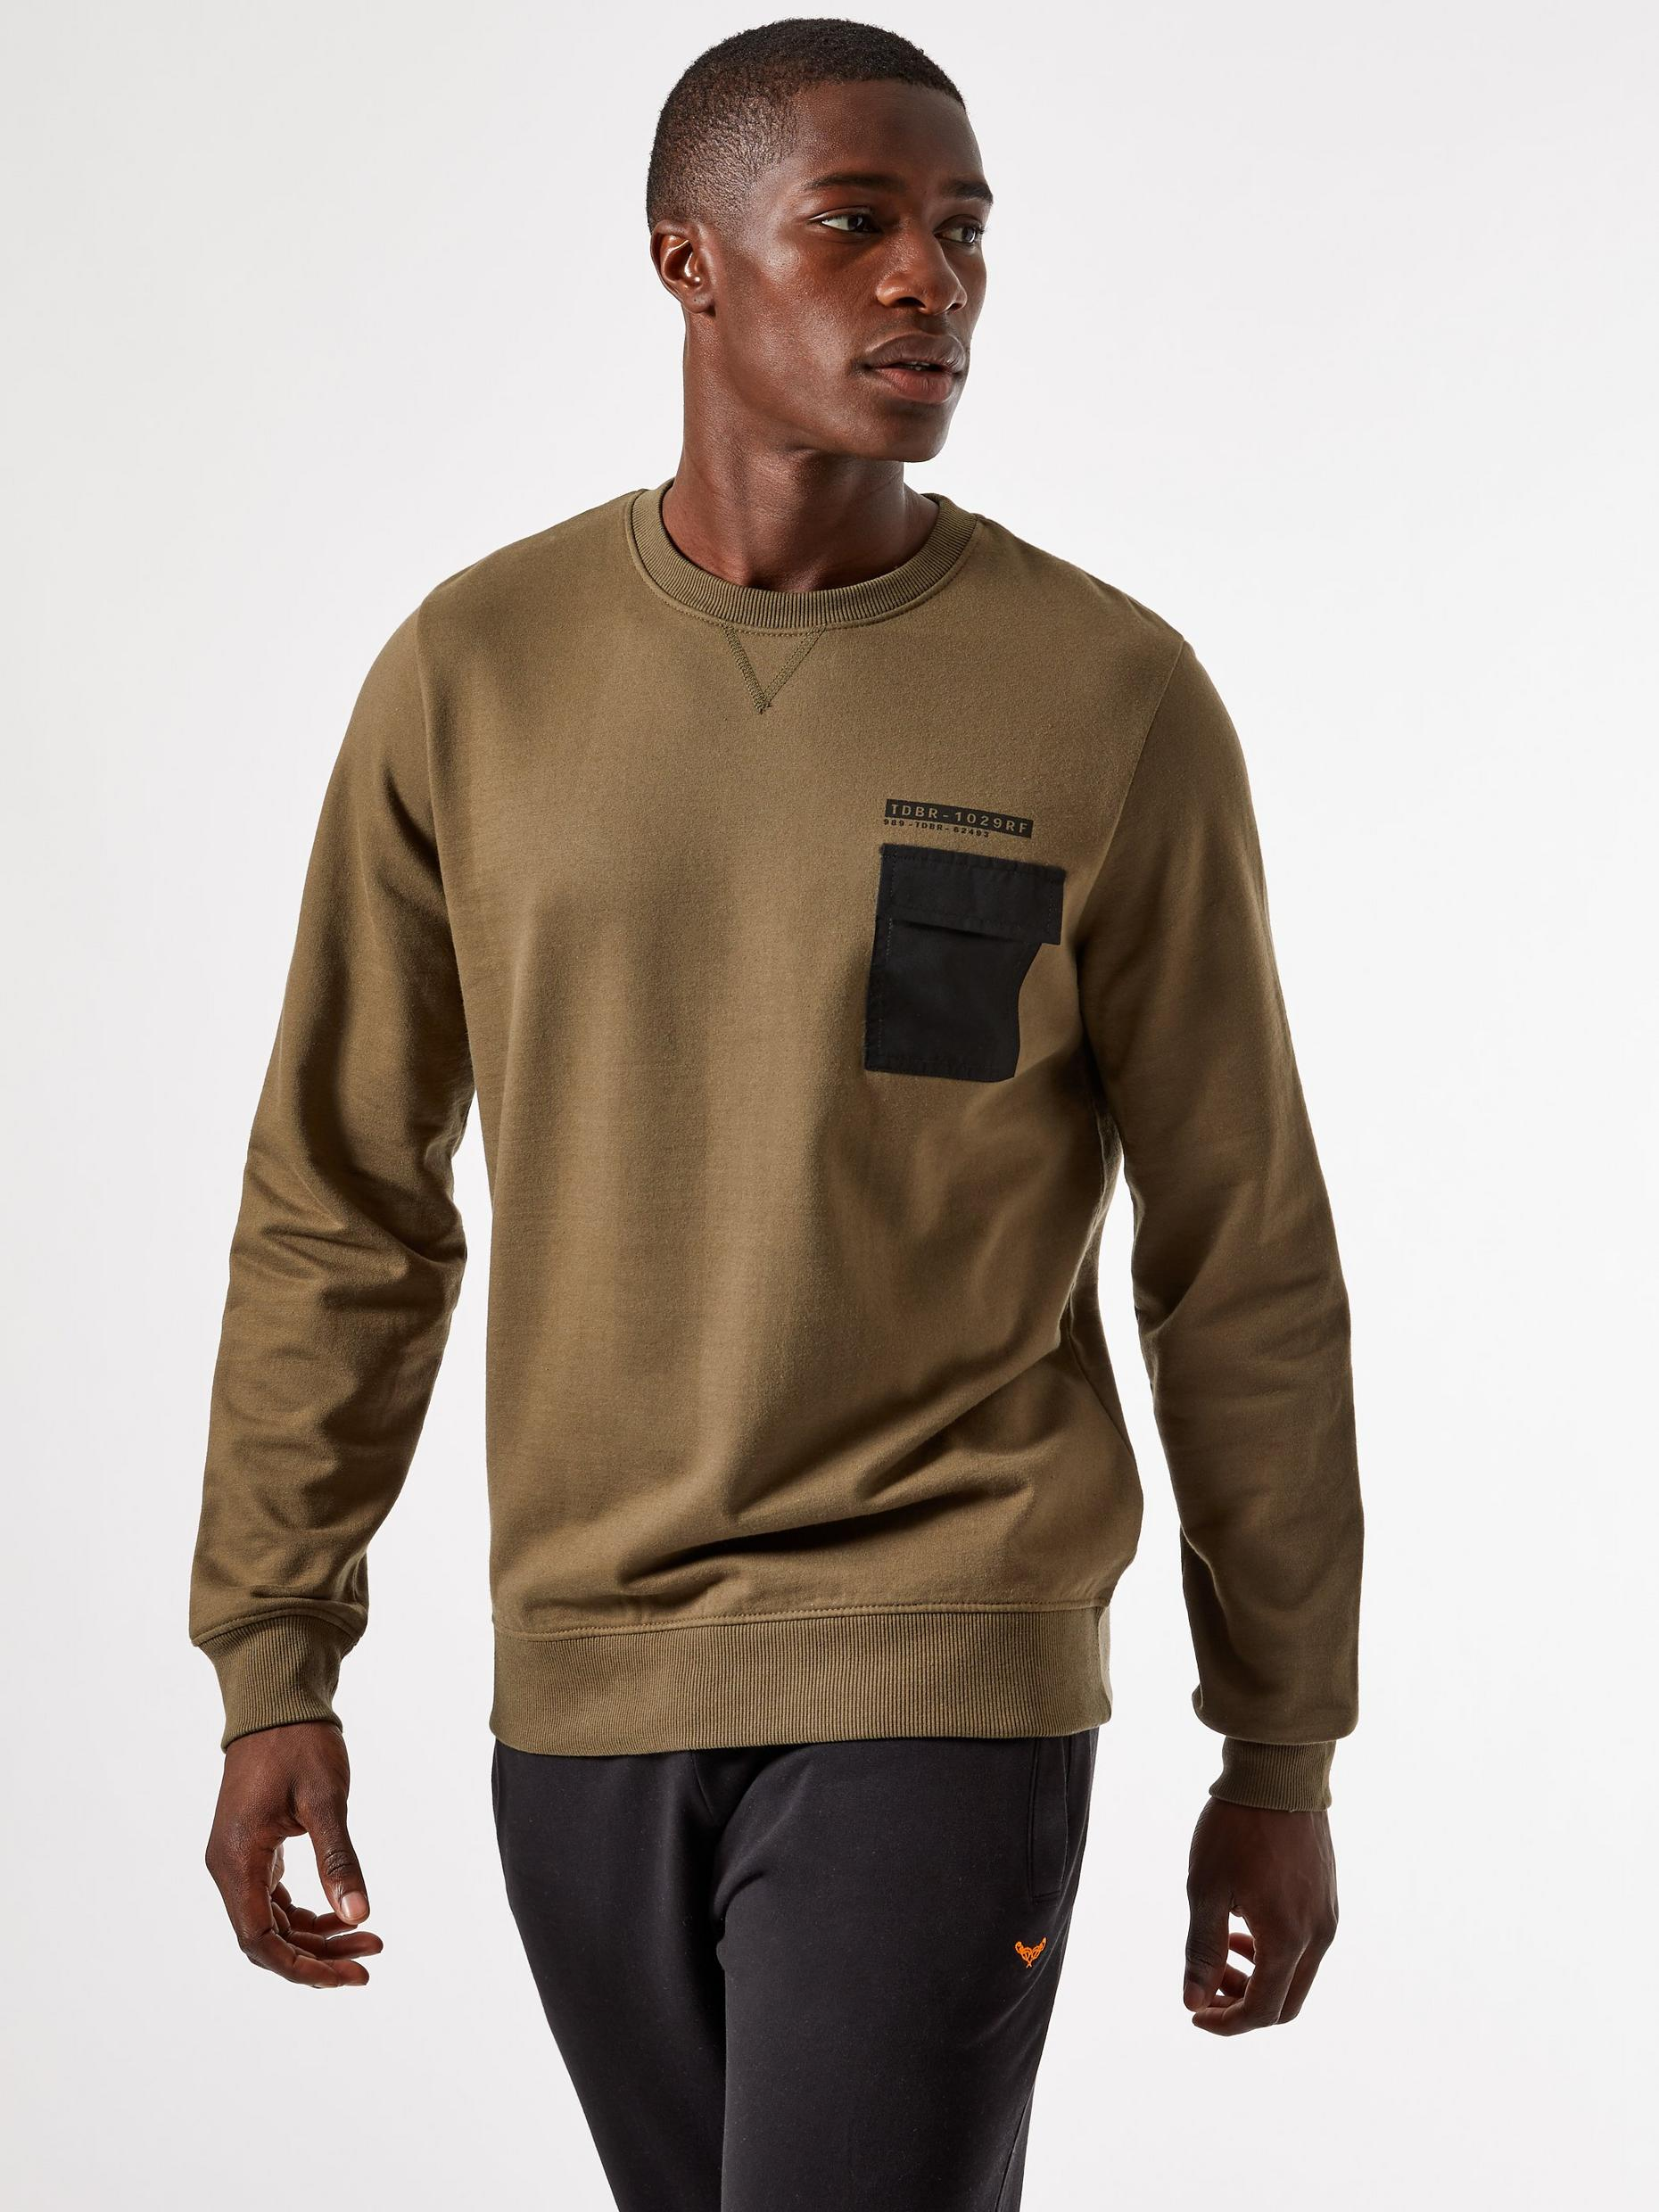 Khaki Fleece Utility Sweatshirt